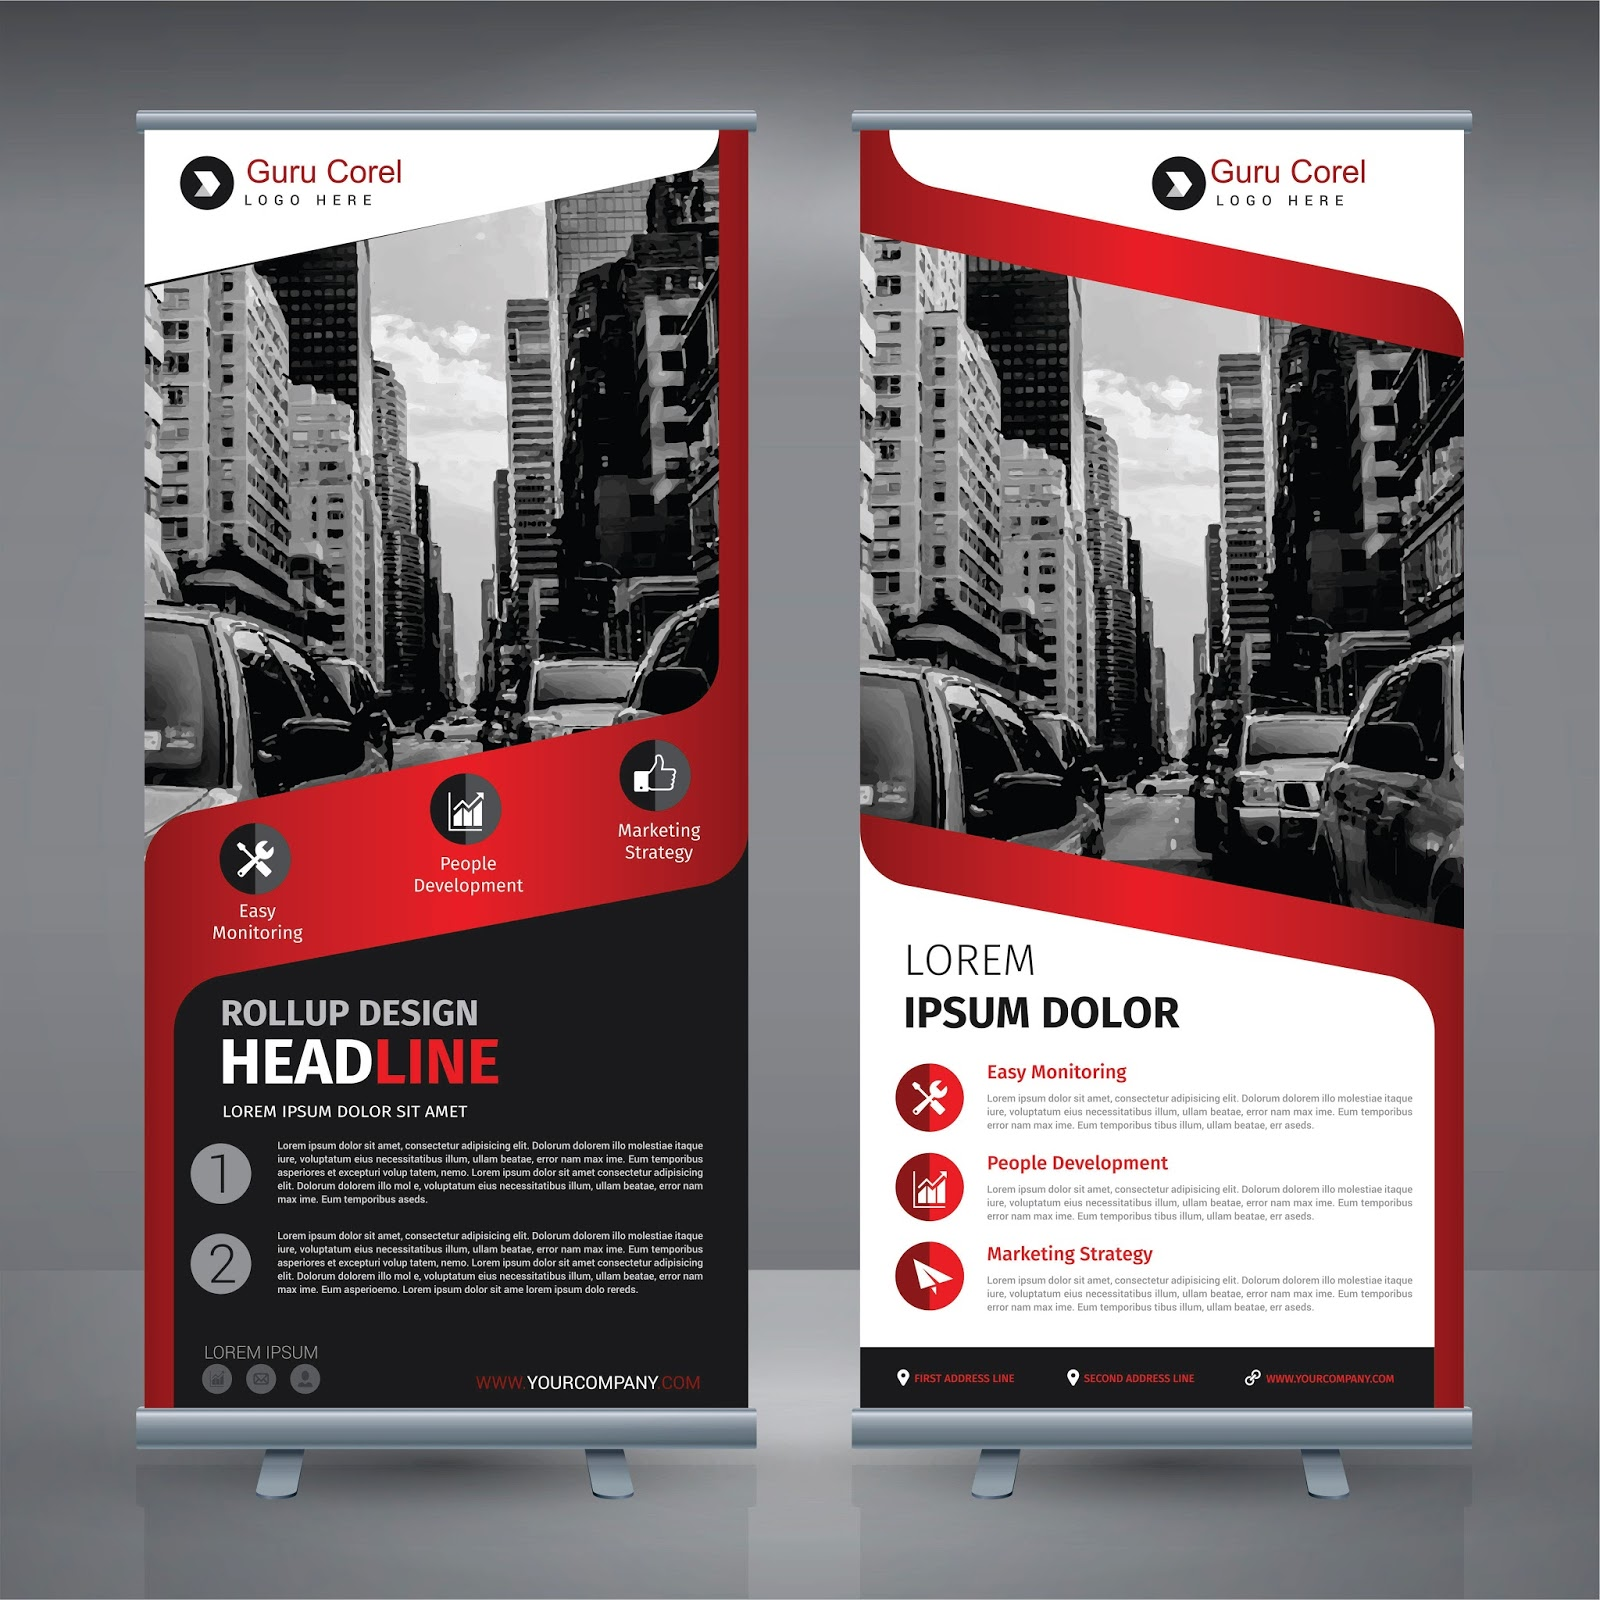 FREE TEMPLATE VECTOR ROLL STAND BANNER AWESOME Guru Corel